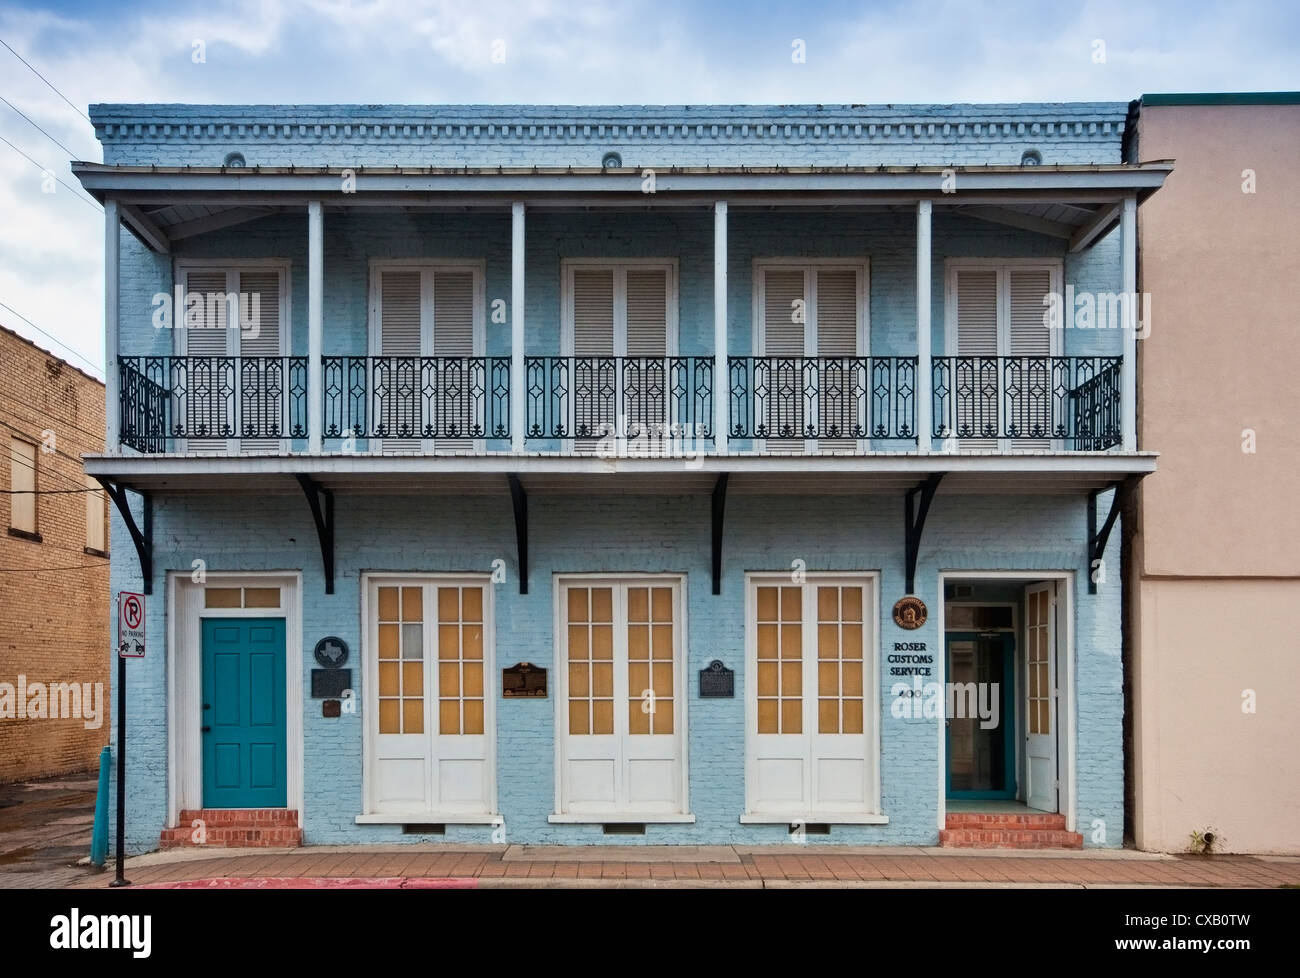 The Gem (1848), the oldest building in Brownsville, Rio Grande Valley, Texas, USA - Stock Image